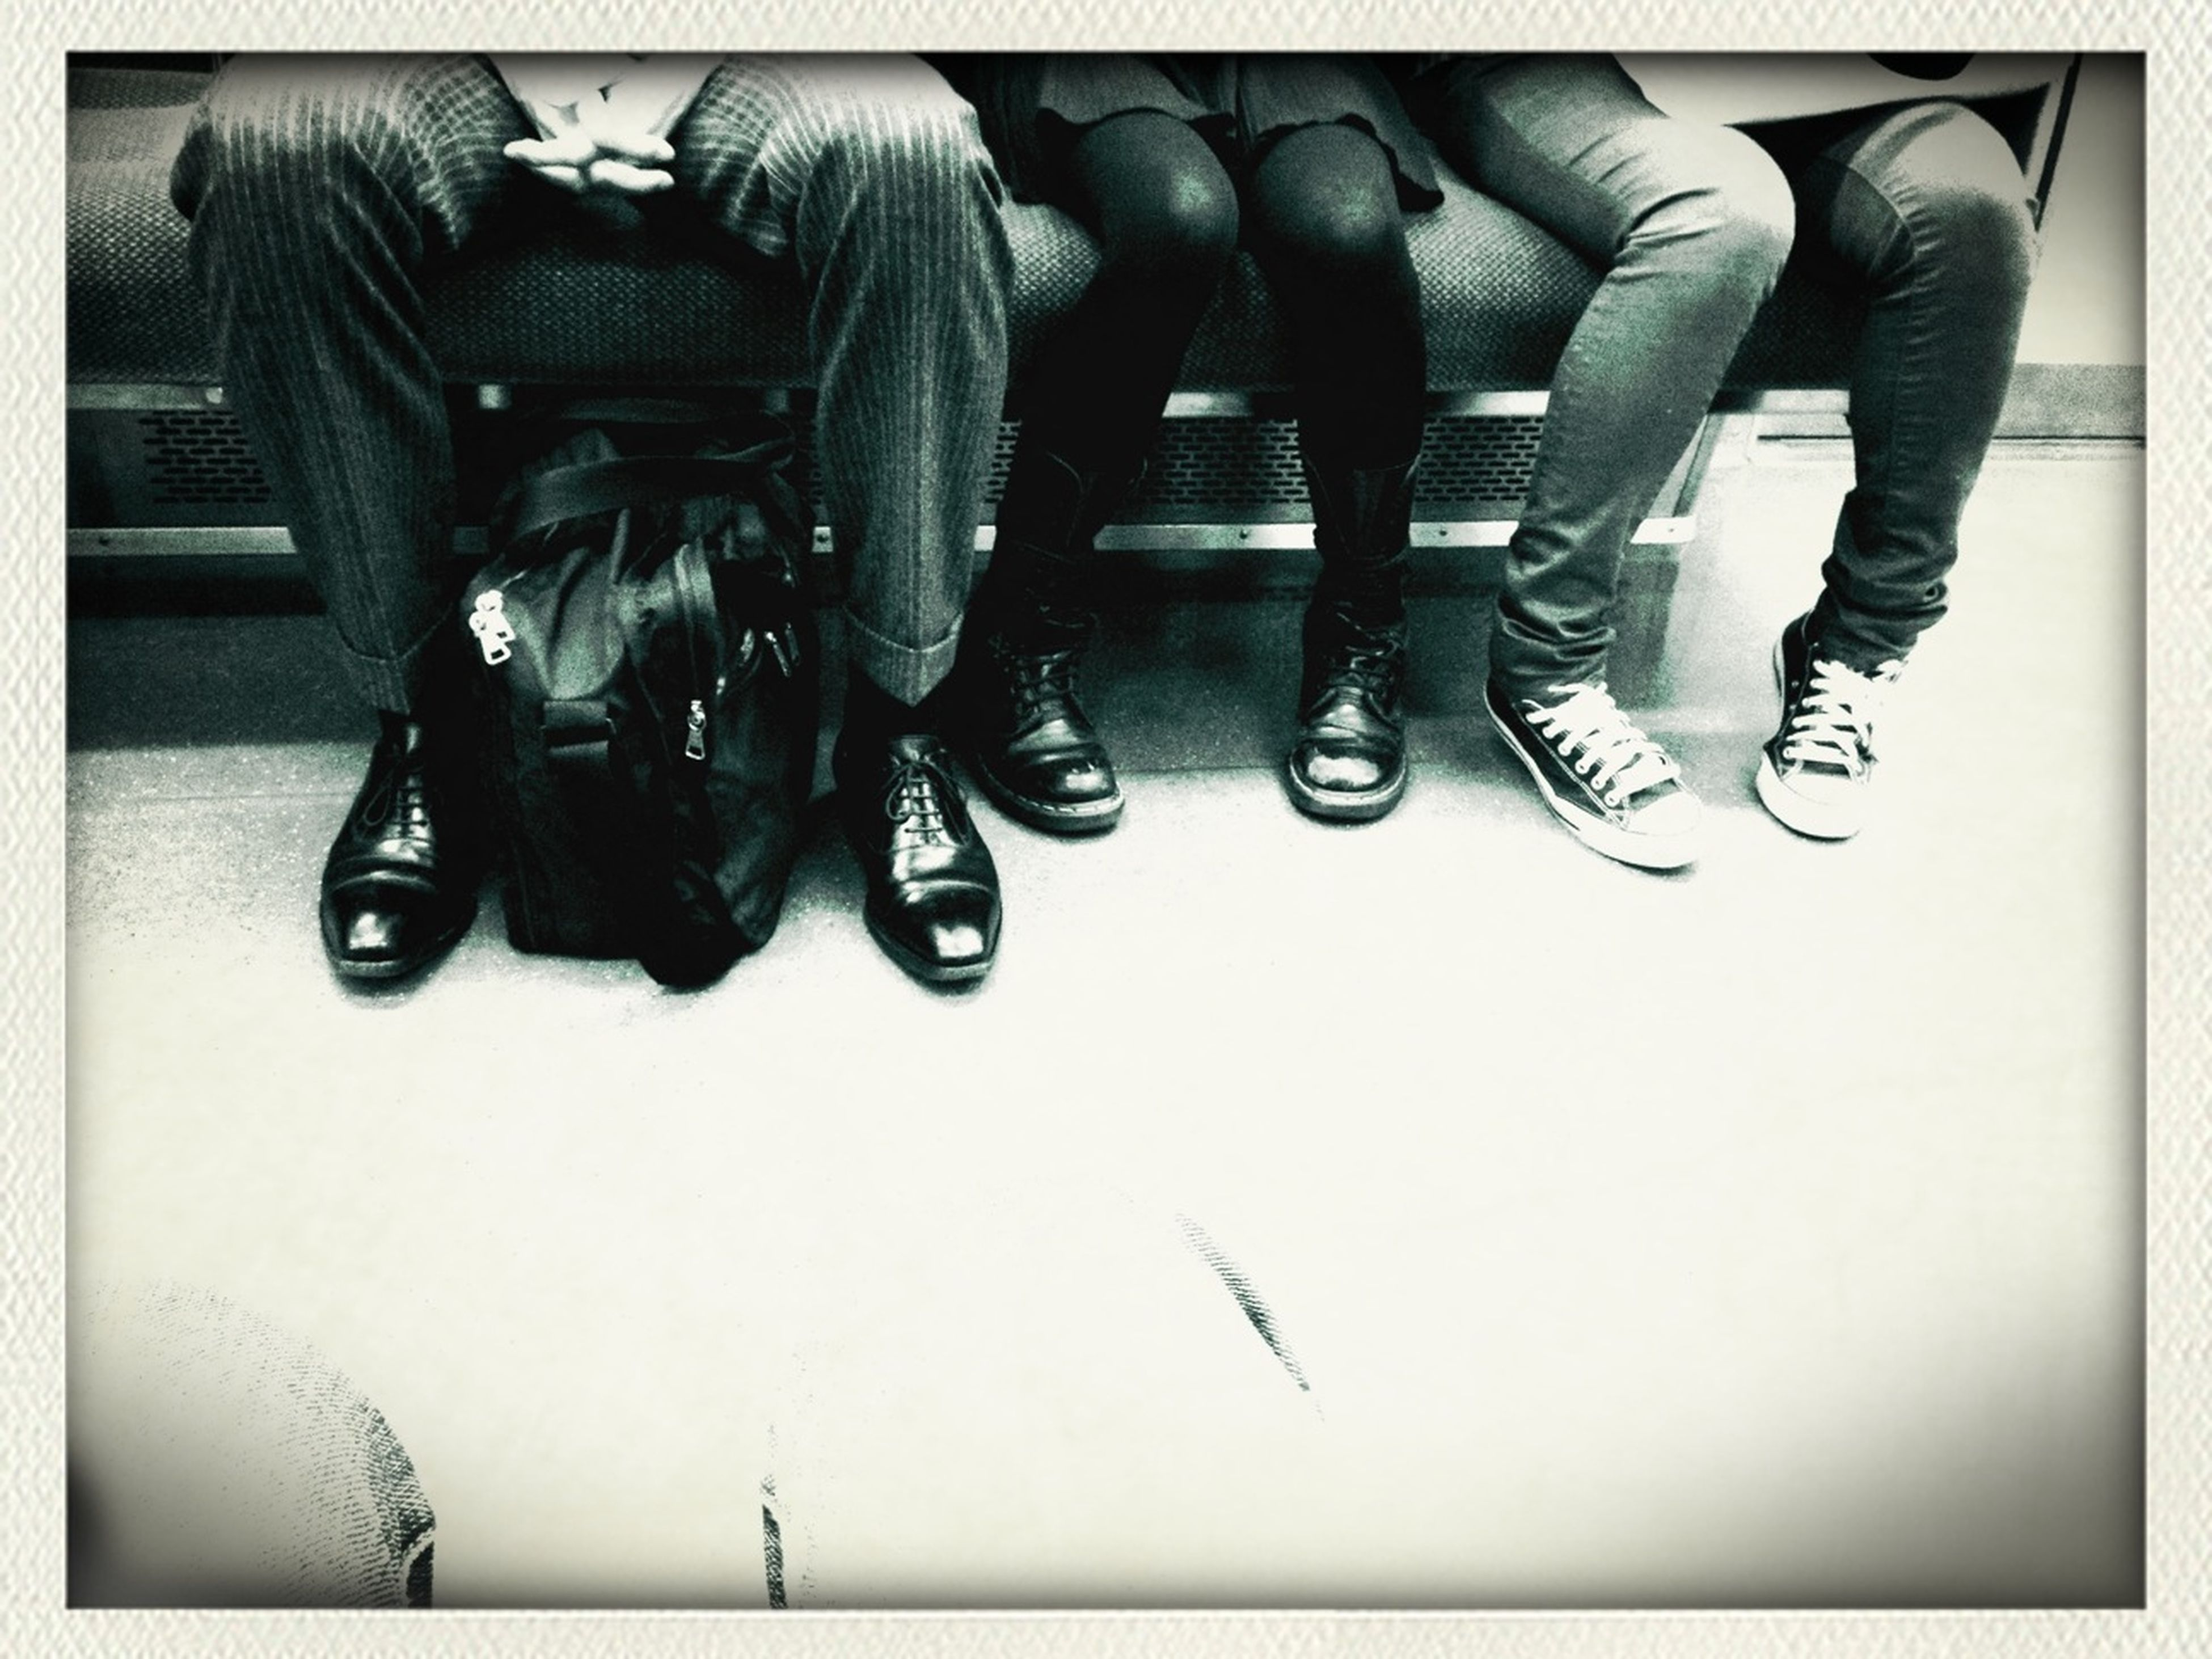 transfer print, indoors, auto post production filter, men, lifestyles, leisure activity, high angle view, person, low section, shoe, in a row, togetherness, hanging, technology, arts culture and entertainment, standing